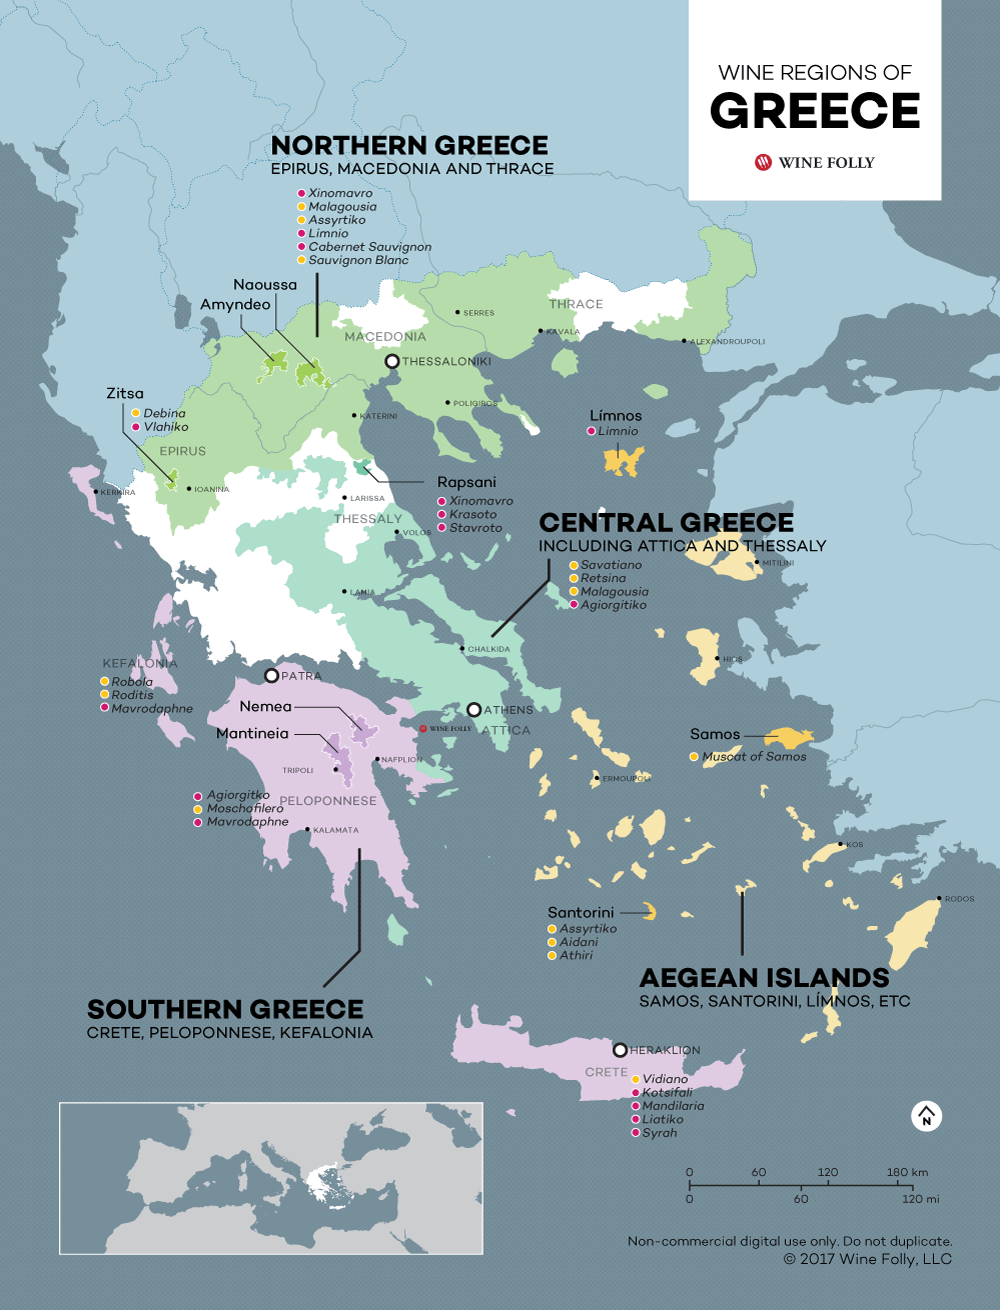 Wine Map of Greece by Wine Folly including wines